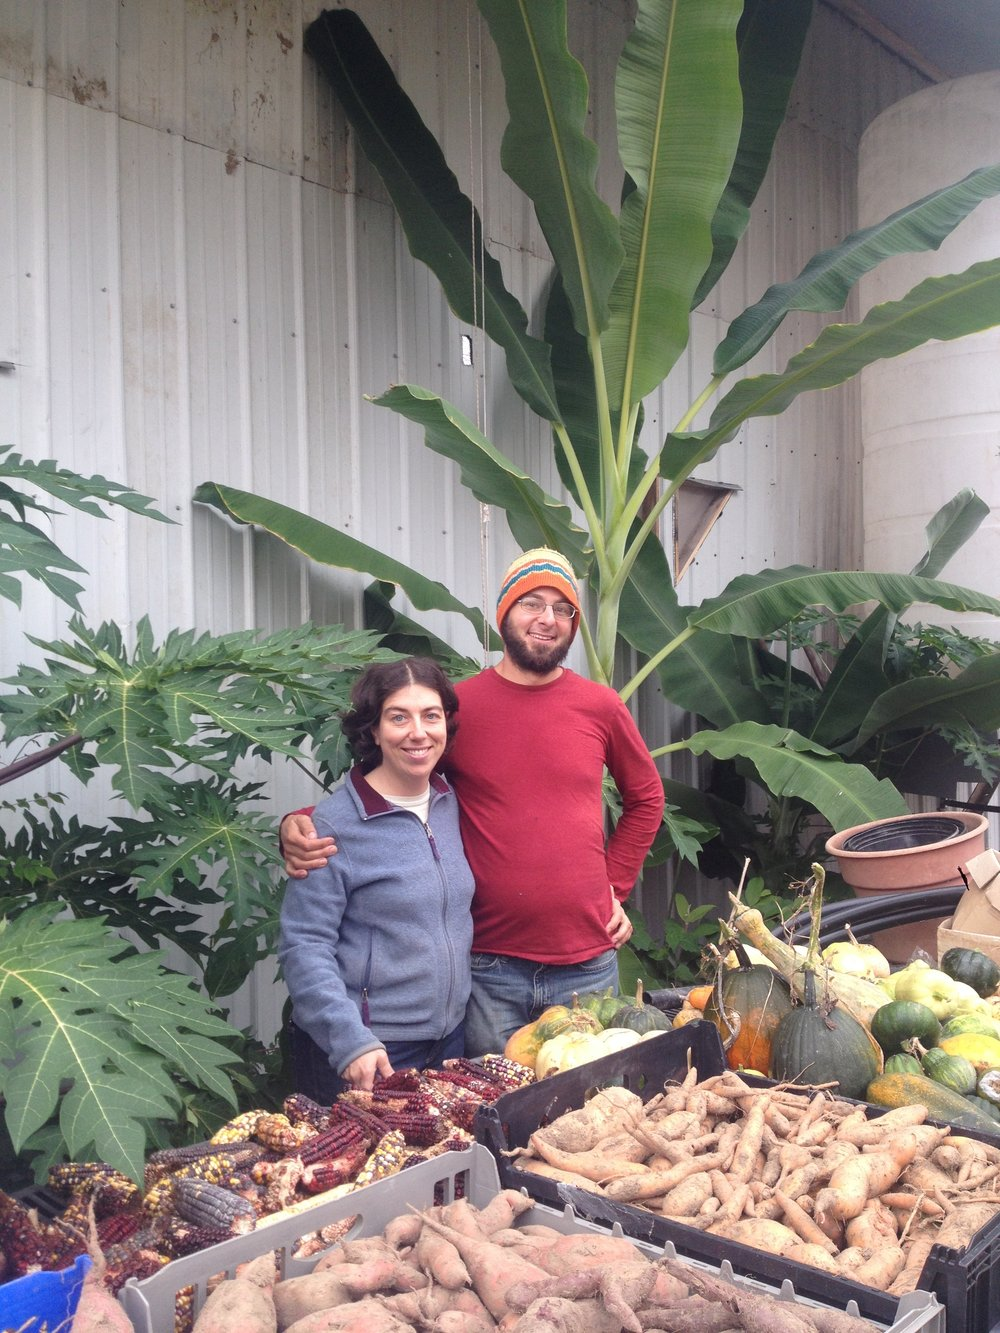 Espri and Darren pose in front of some tropical plants growing in their new greenhouse.